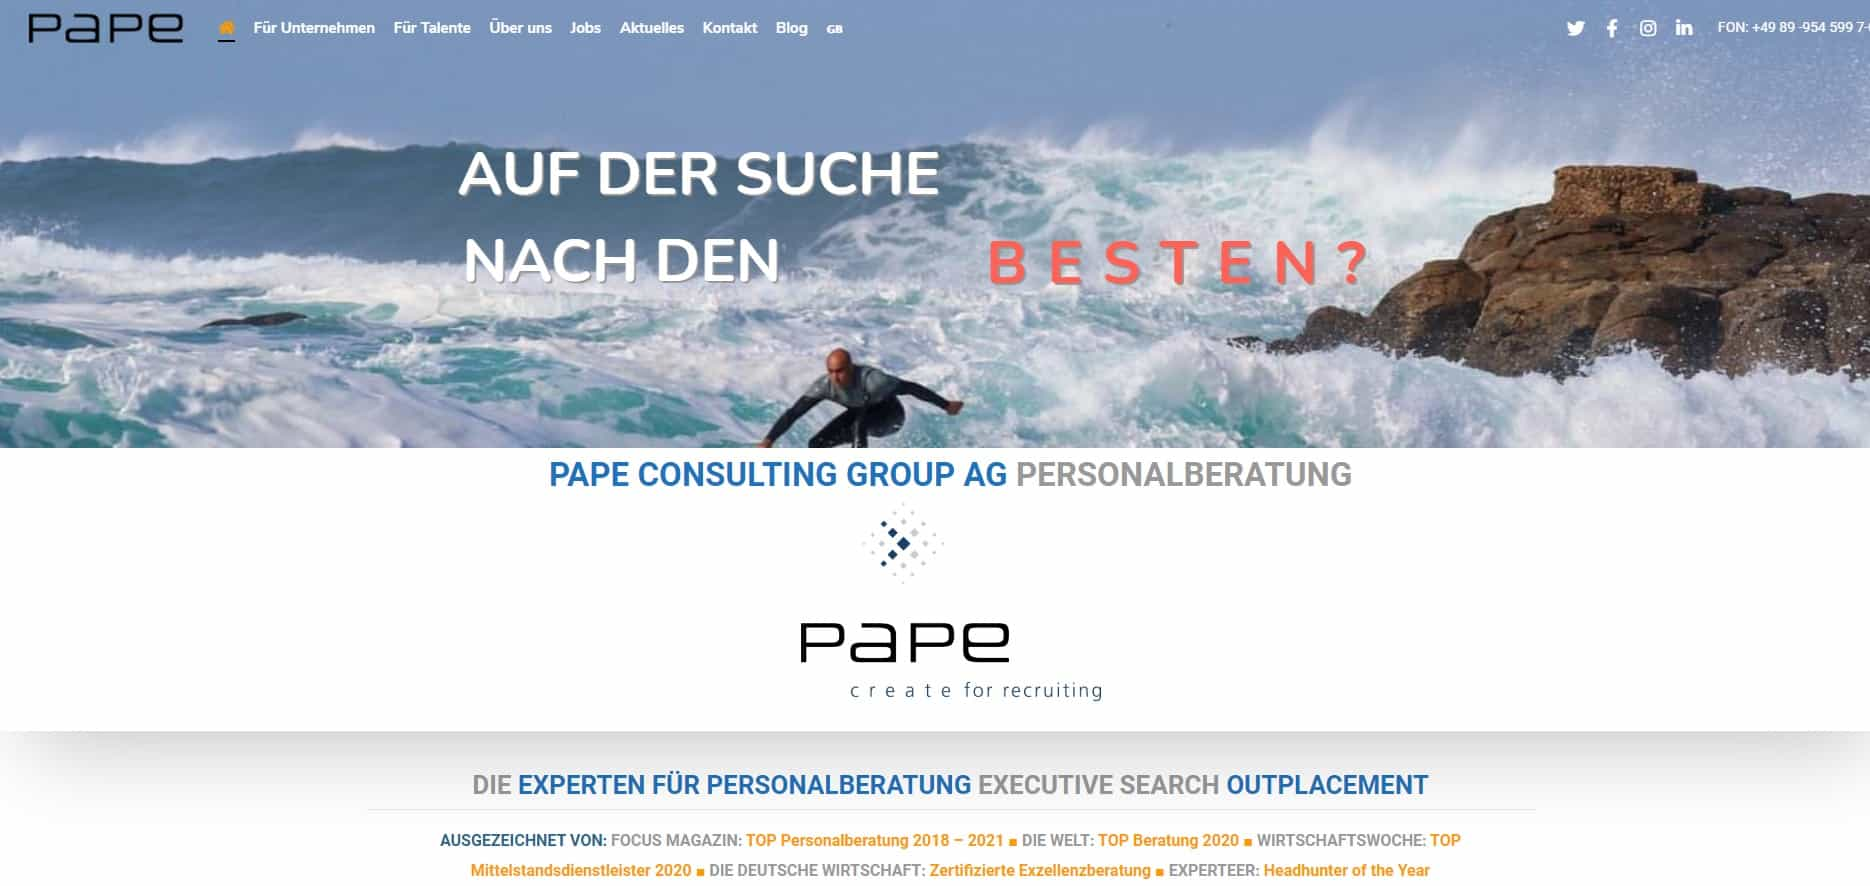 Pape Consulting